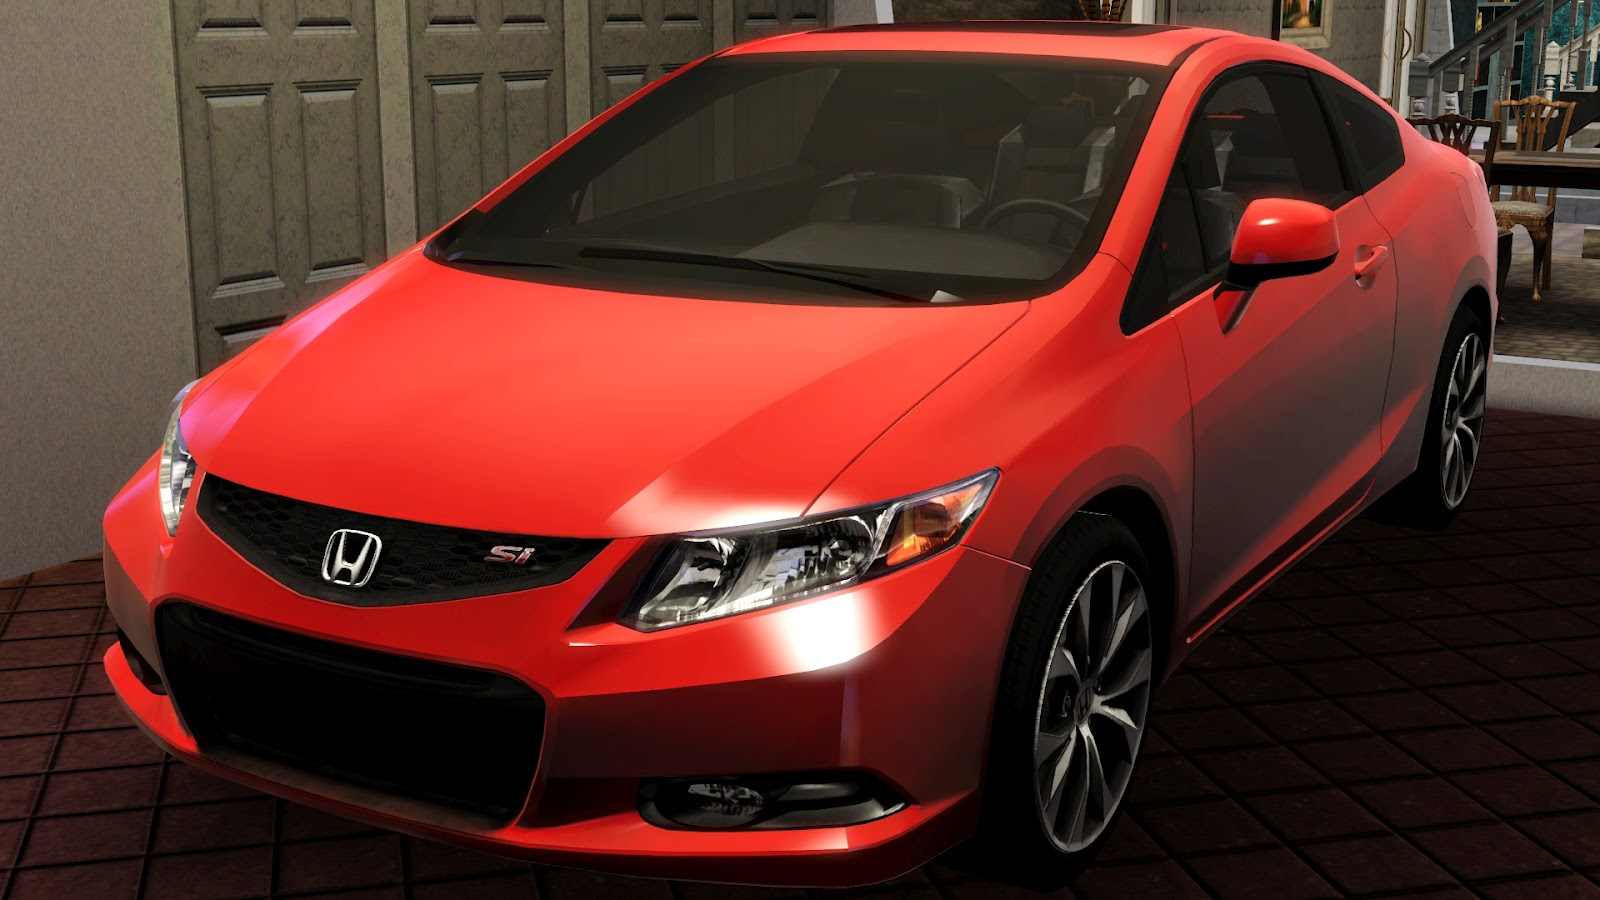 my sims 3 blog 2012 honda civic si coupe by fresh prince. Black Bedroom Furniture Sets. Home Design Ideas